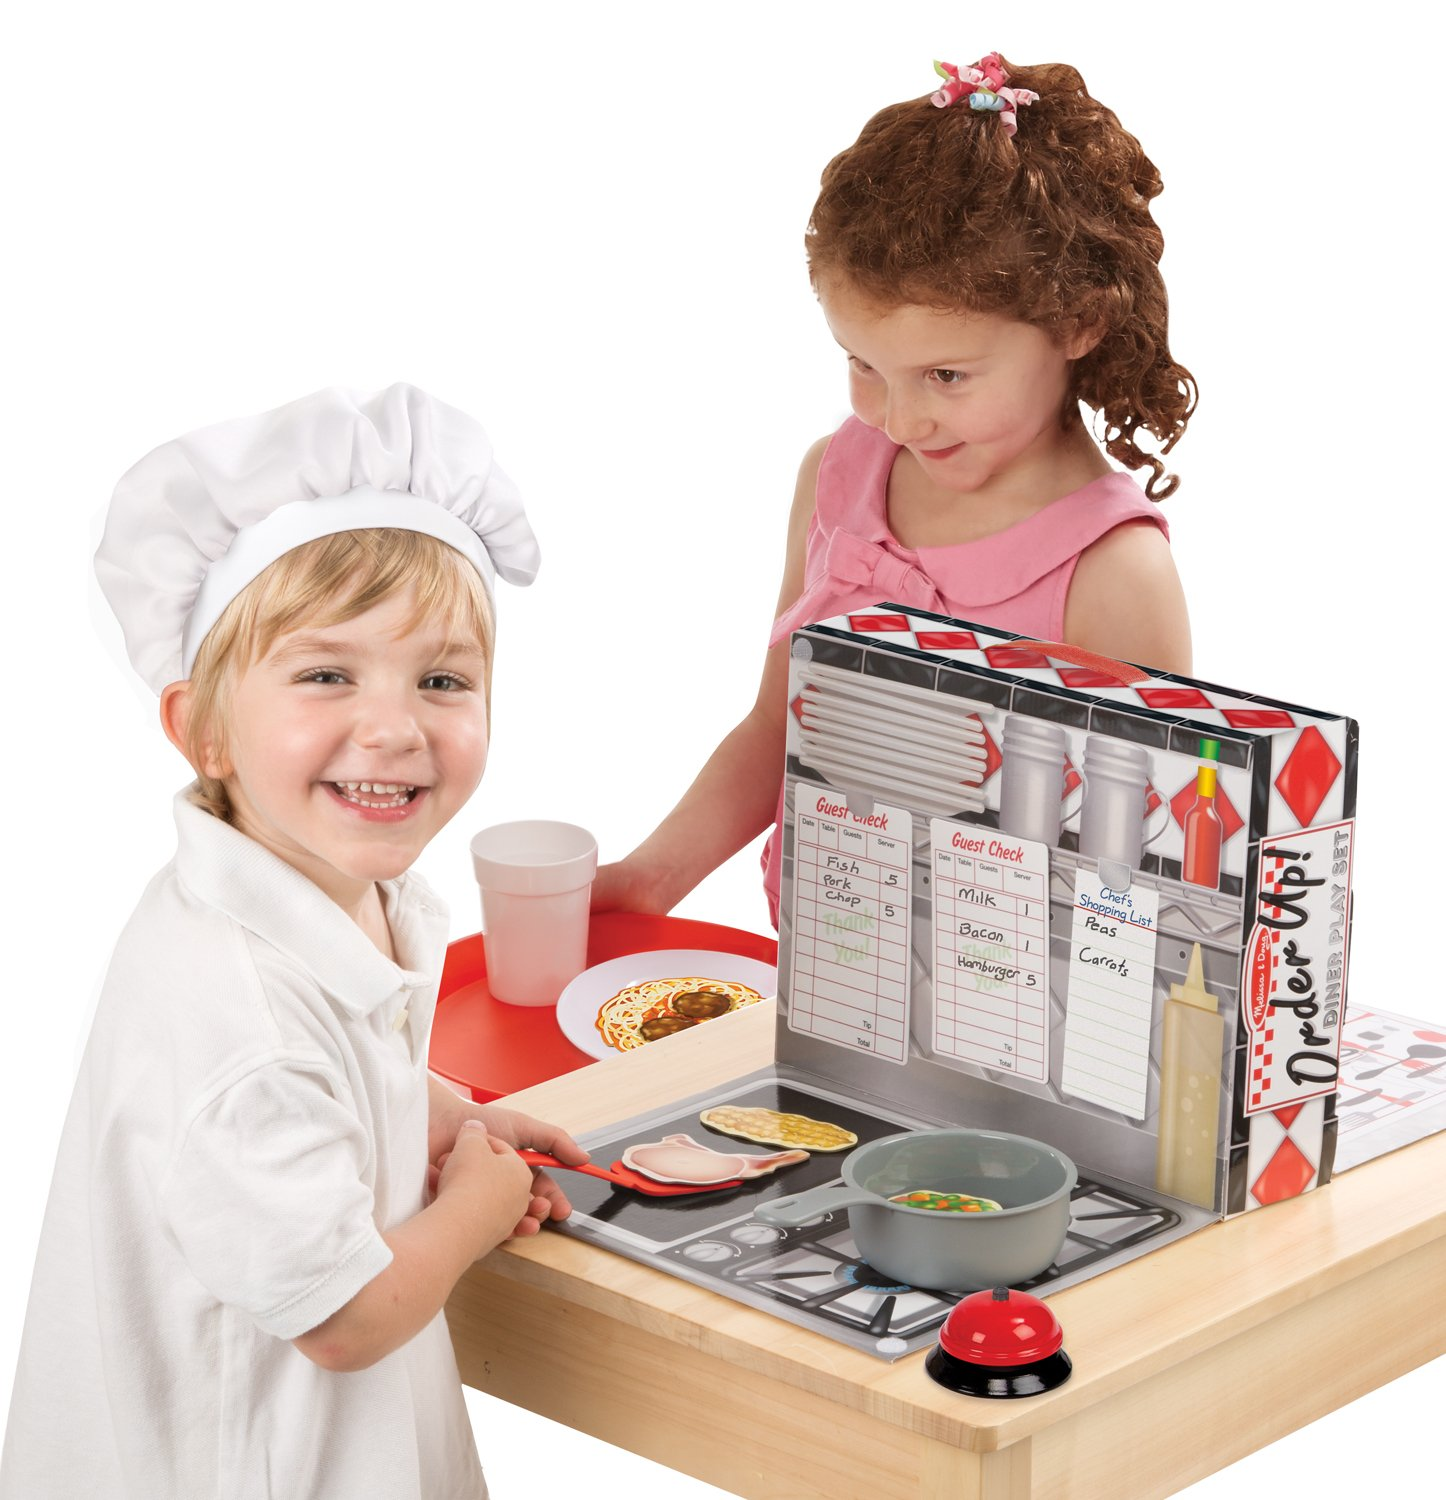 Melissa & Doug Order Up! Diner Play Set with Play Food (53 pcs) - Be Cook, Server, or Customer 18515.0